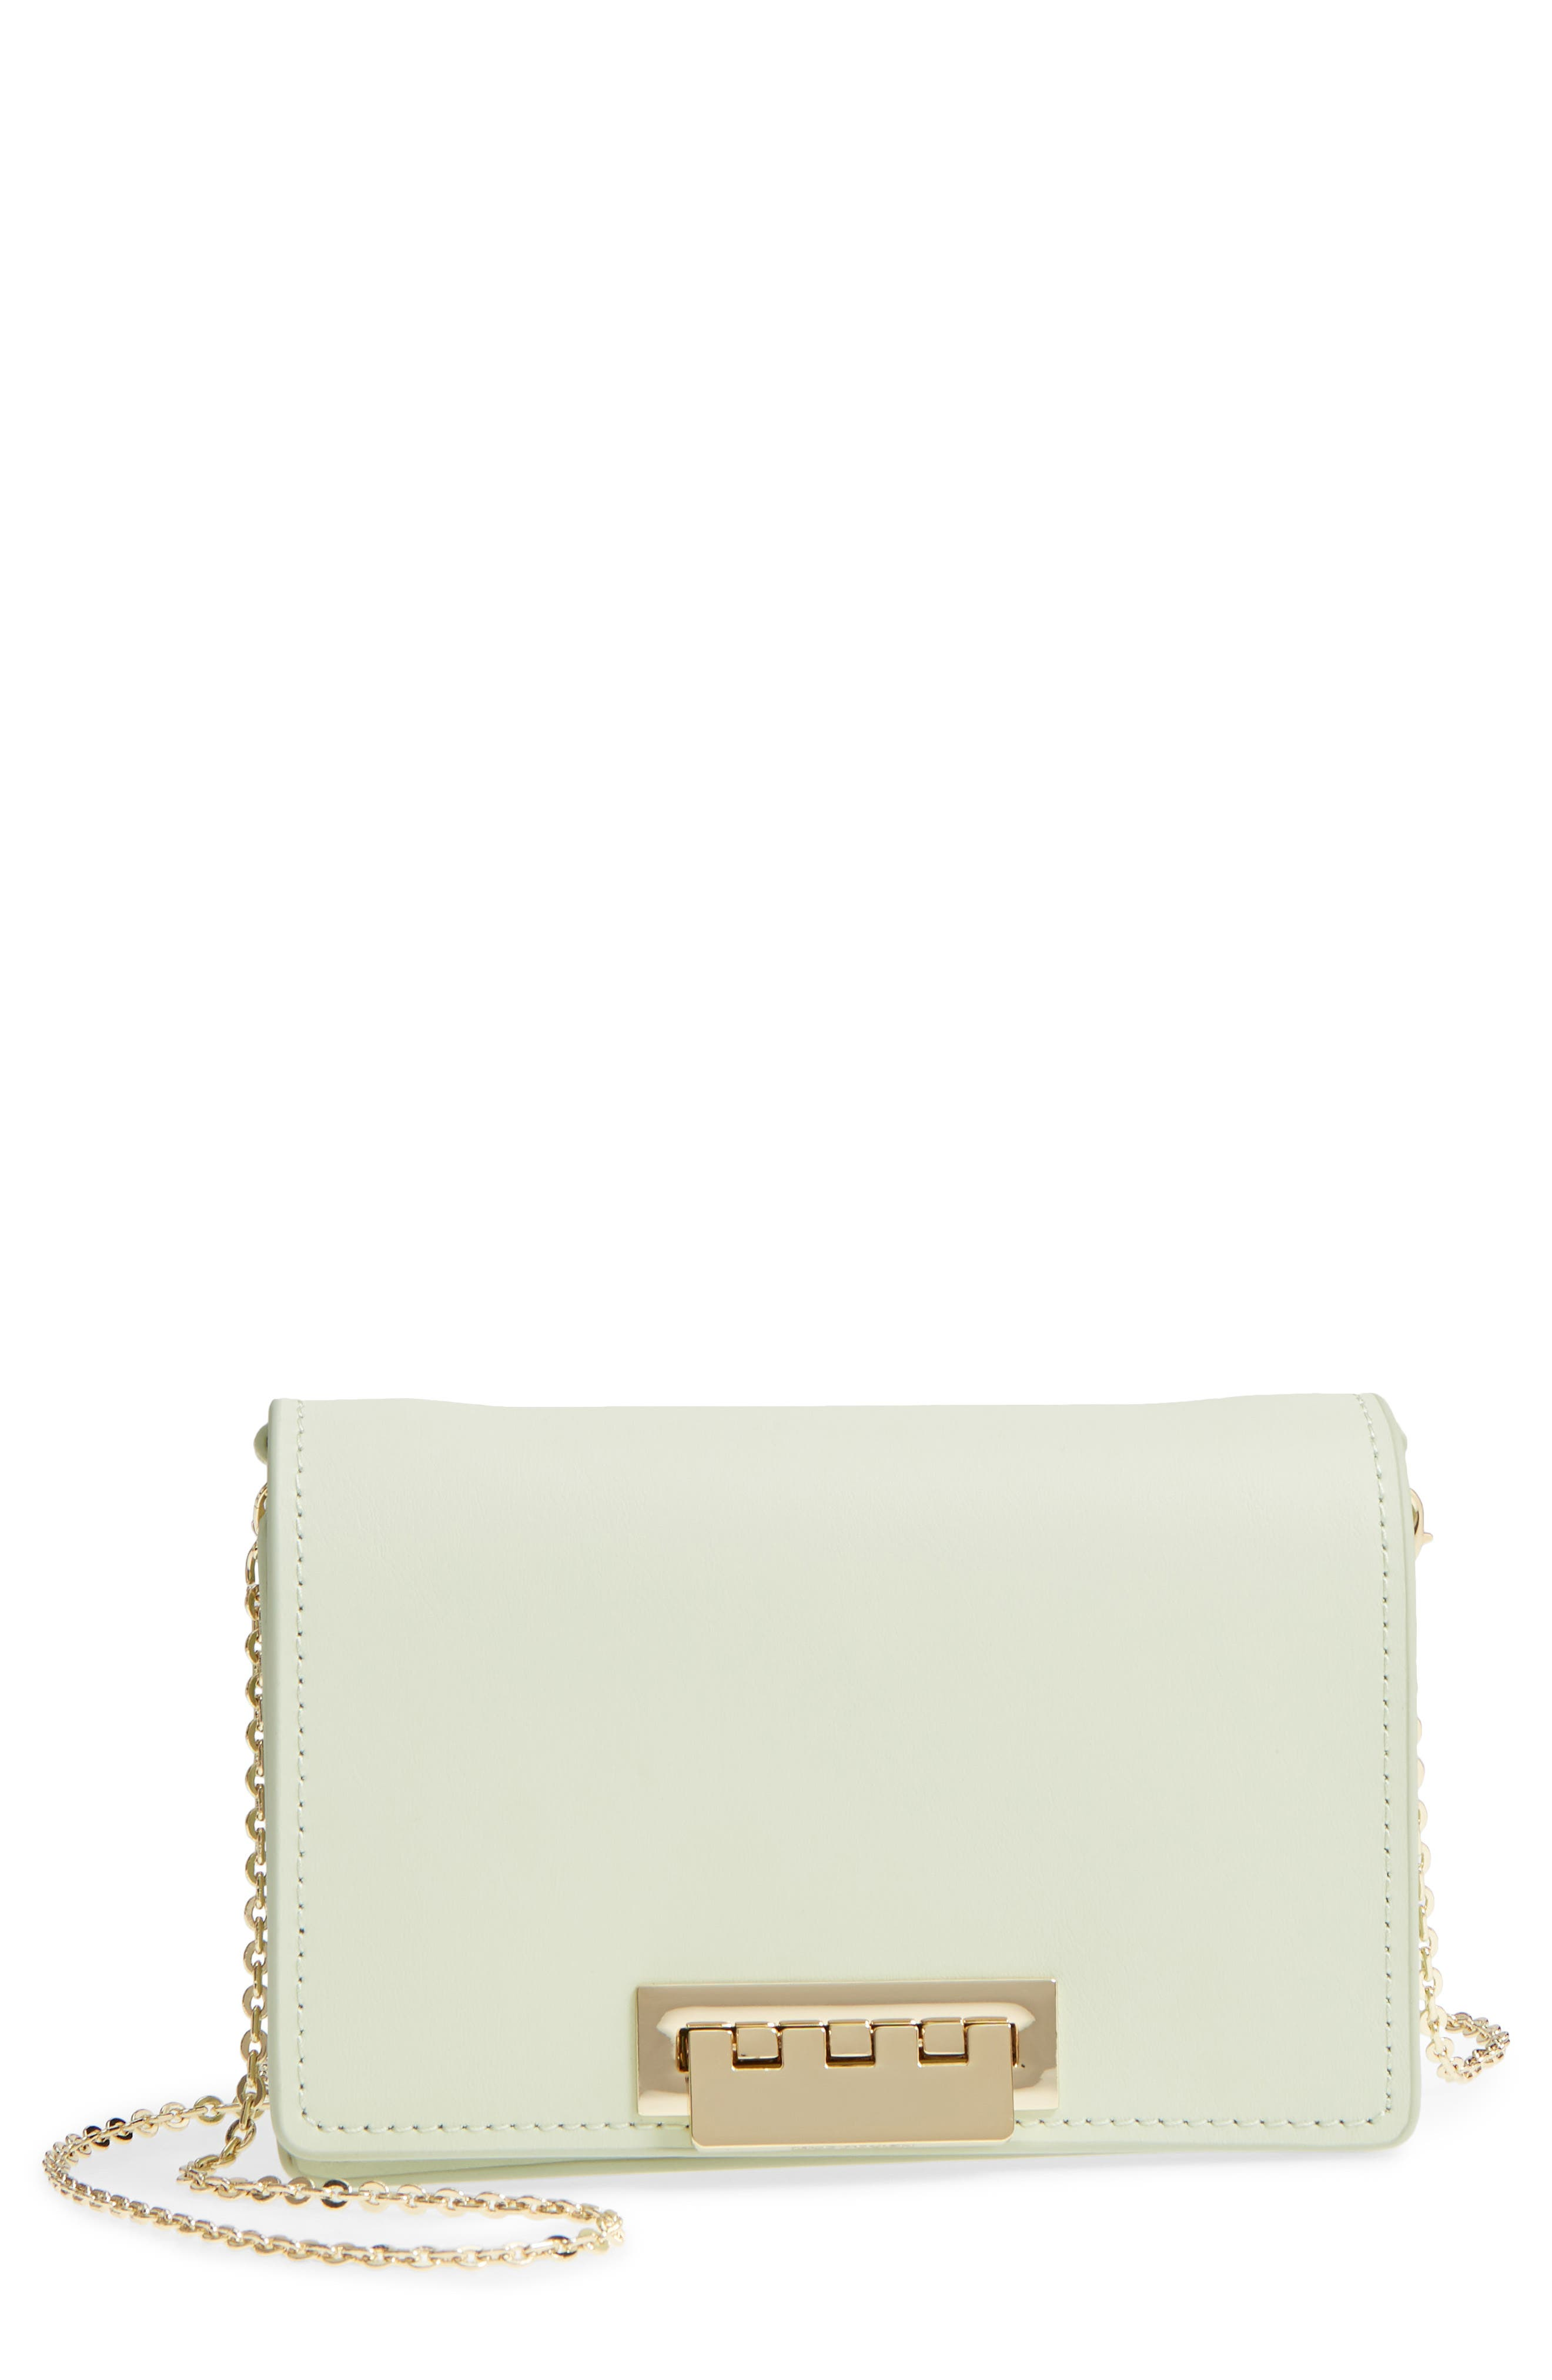 Earthette Leather Accordion Crossbody Bag,                         Main,                         color, Peridot